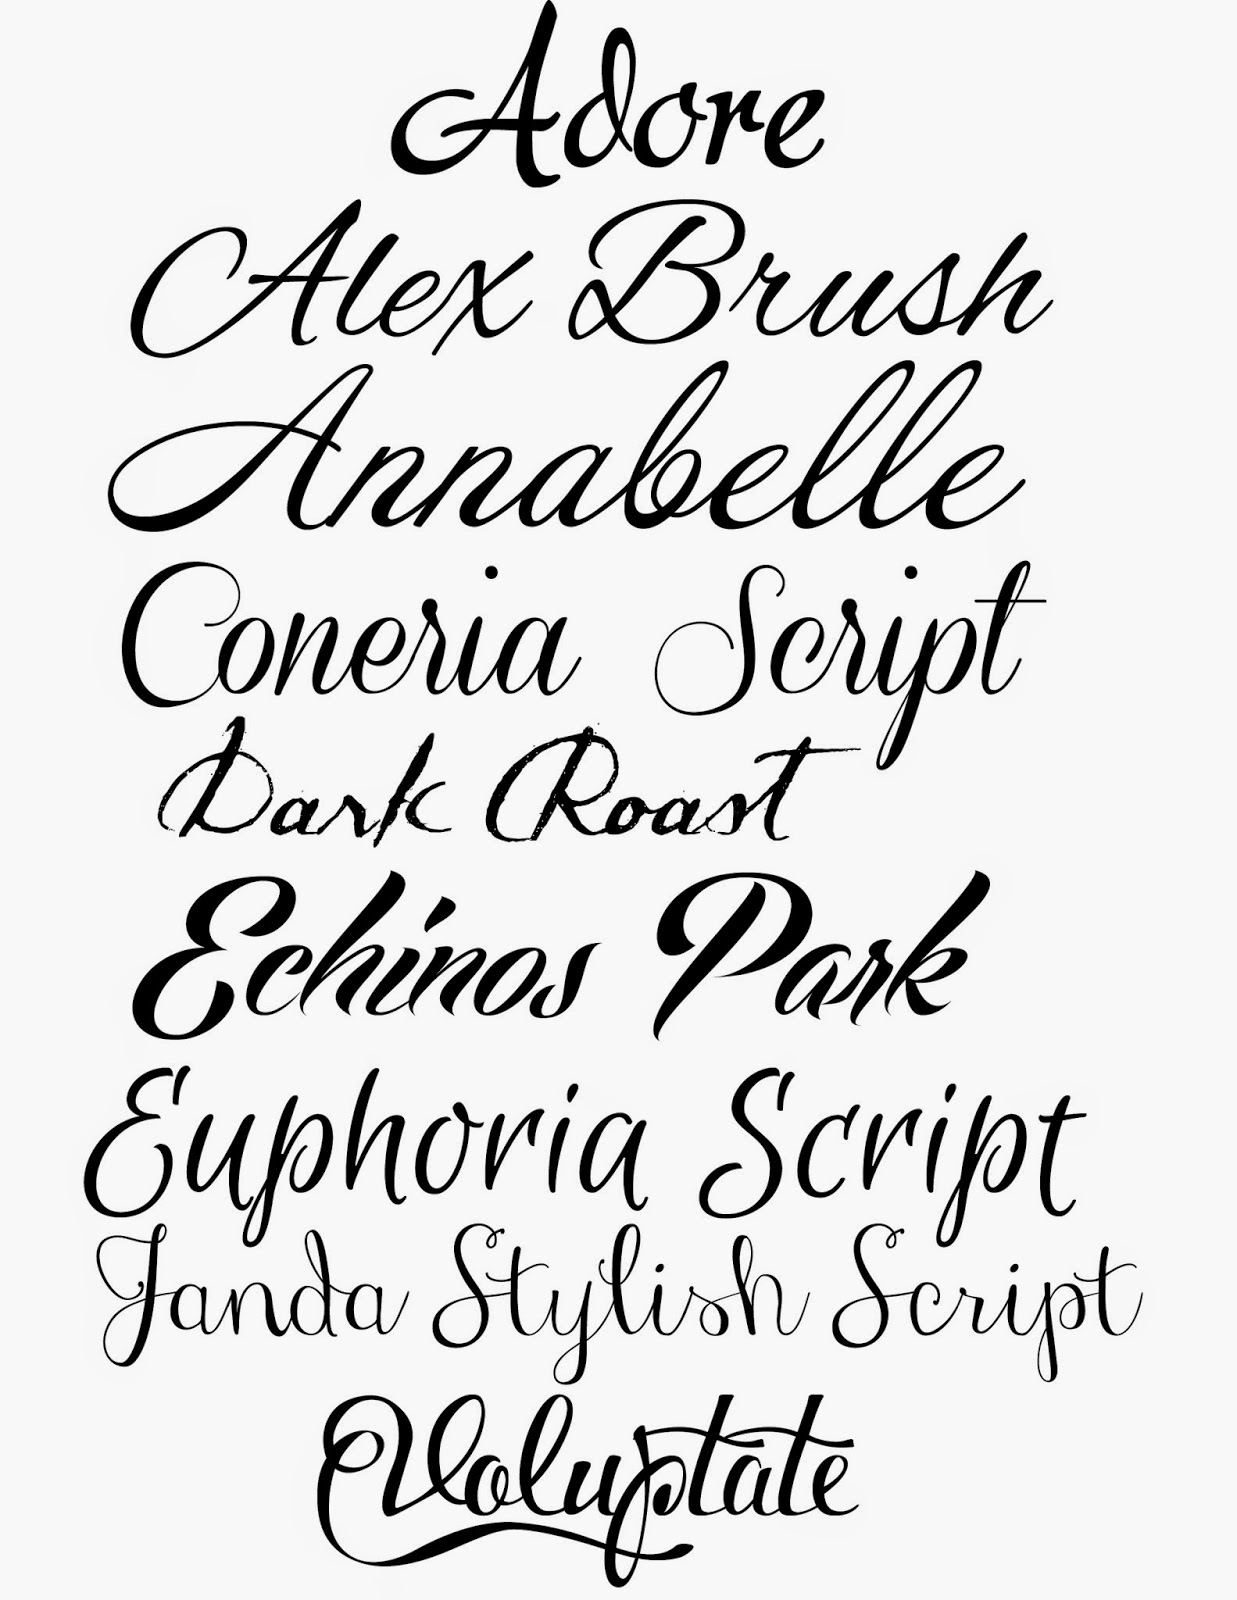 Alfabeto Falsa Caligrafia Doodlecraft How To Fake Script Calligraphy